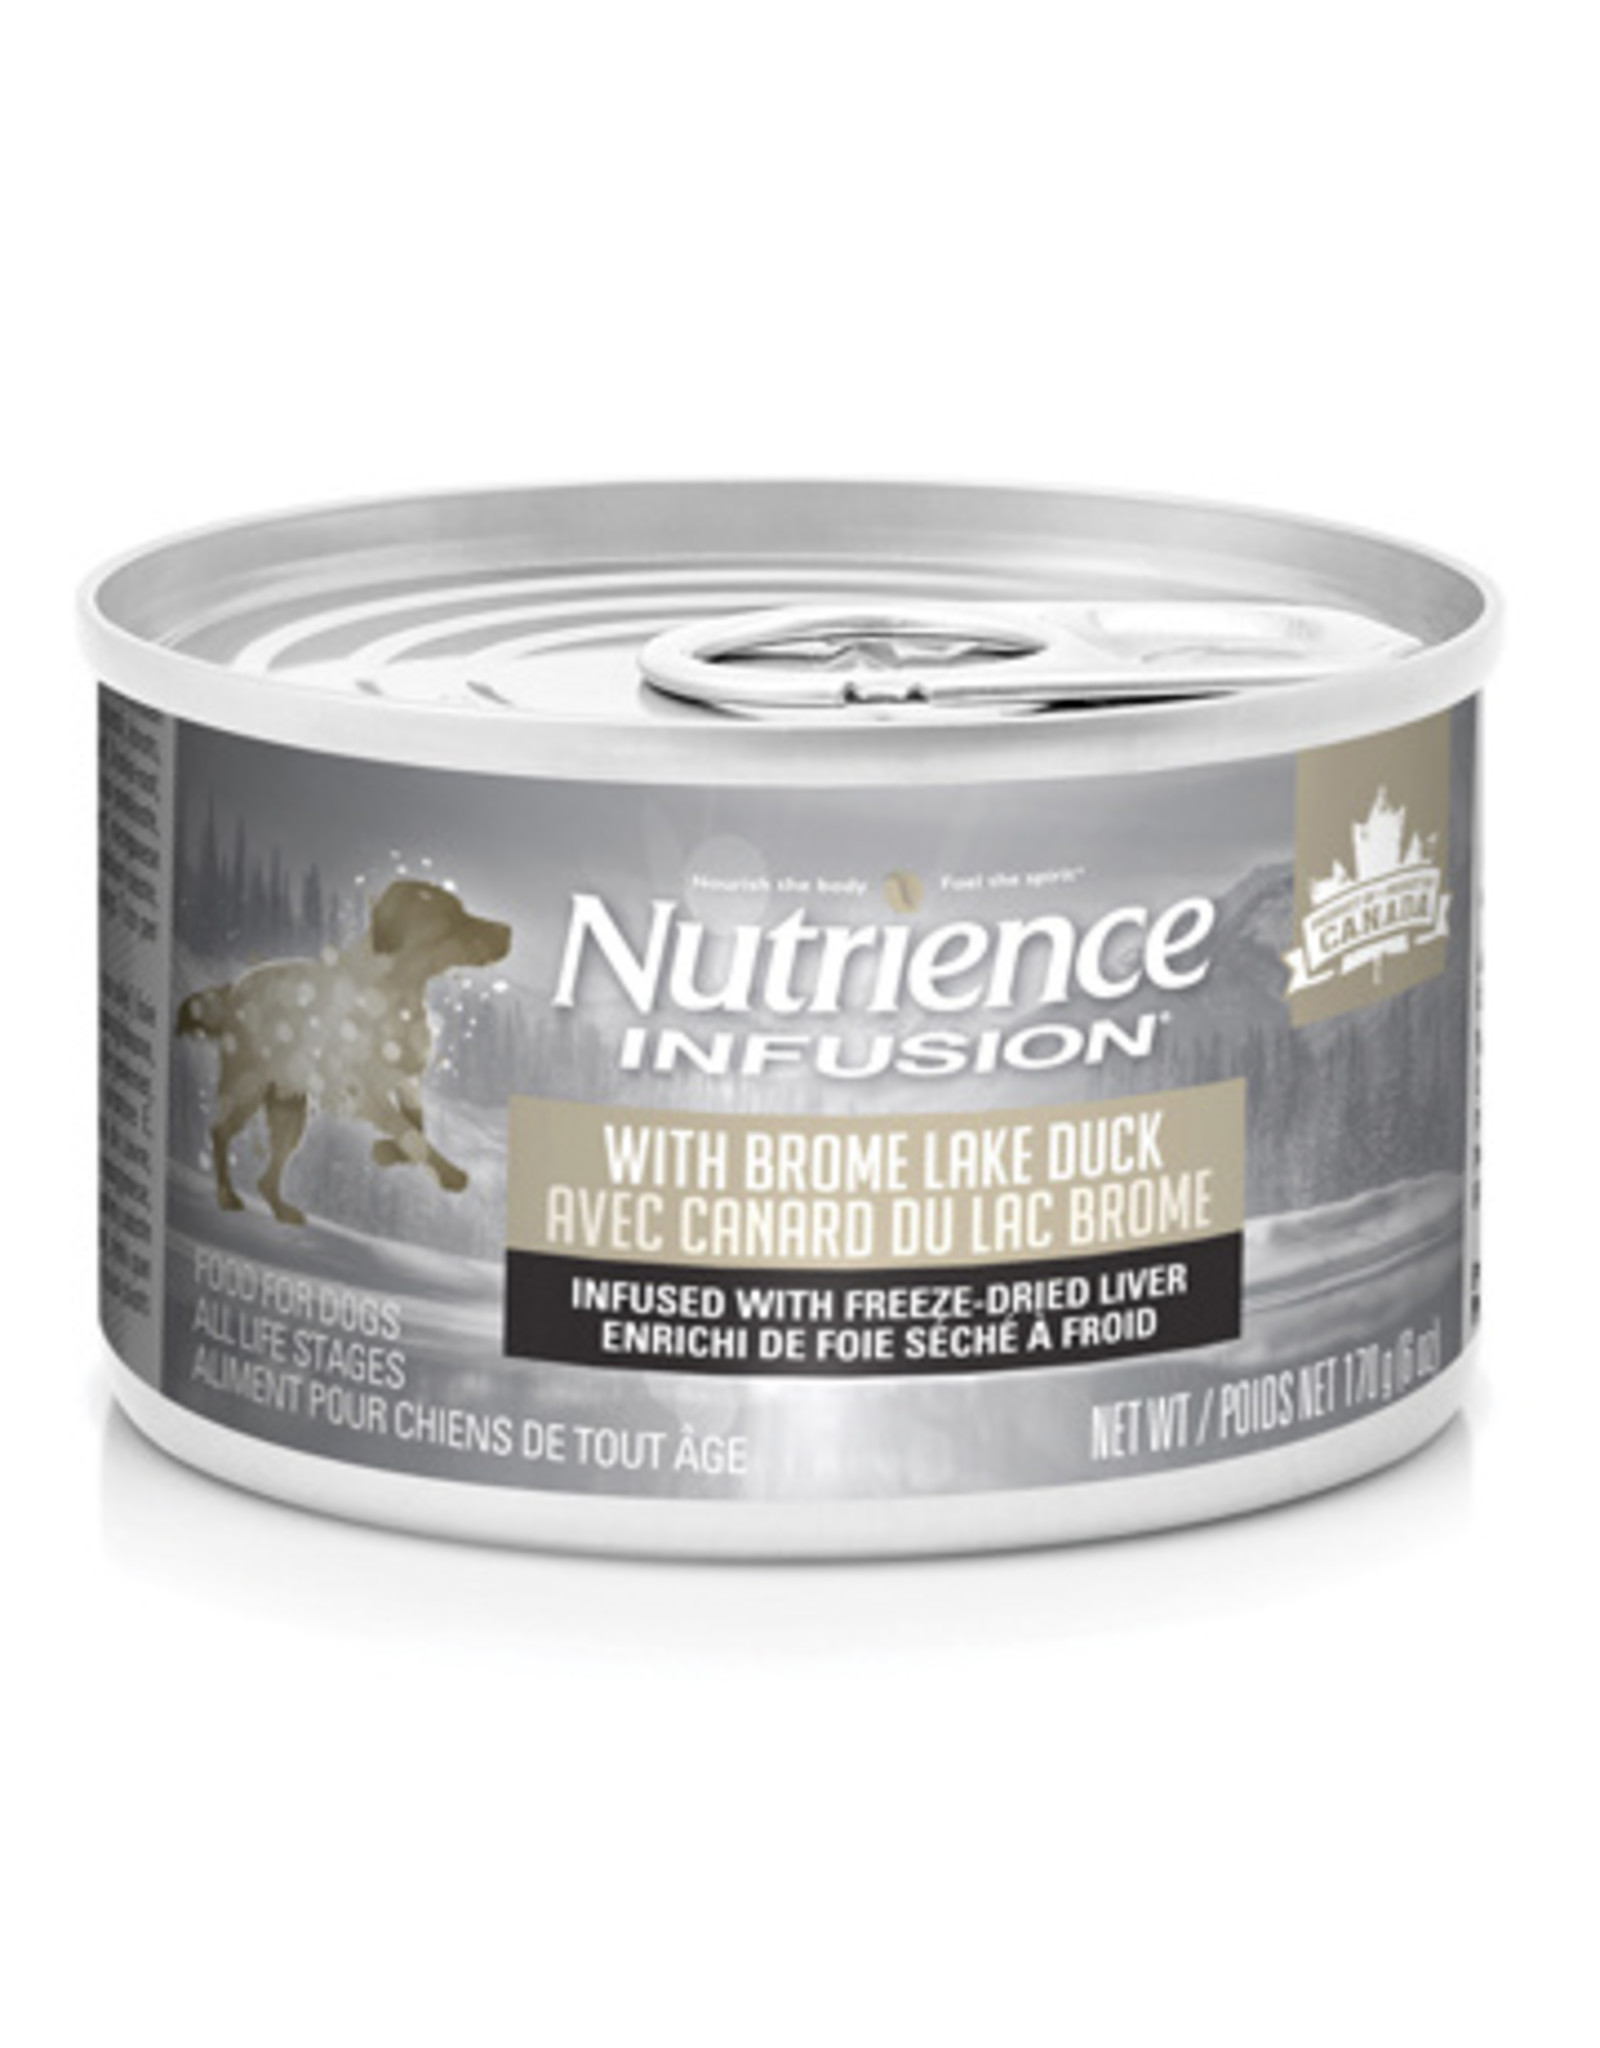 Nutrience Nutrience Dog Infusion Pate Canned Food 6 oz